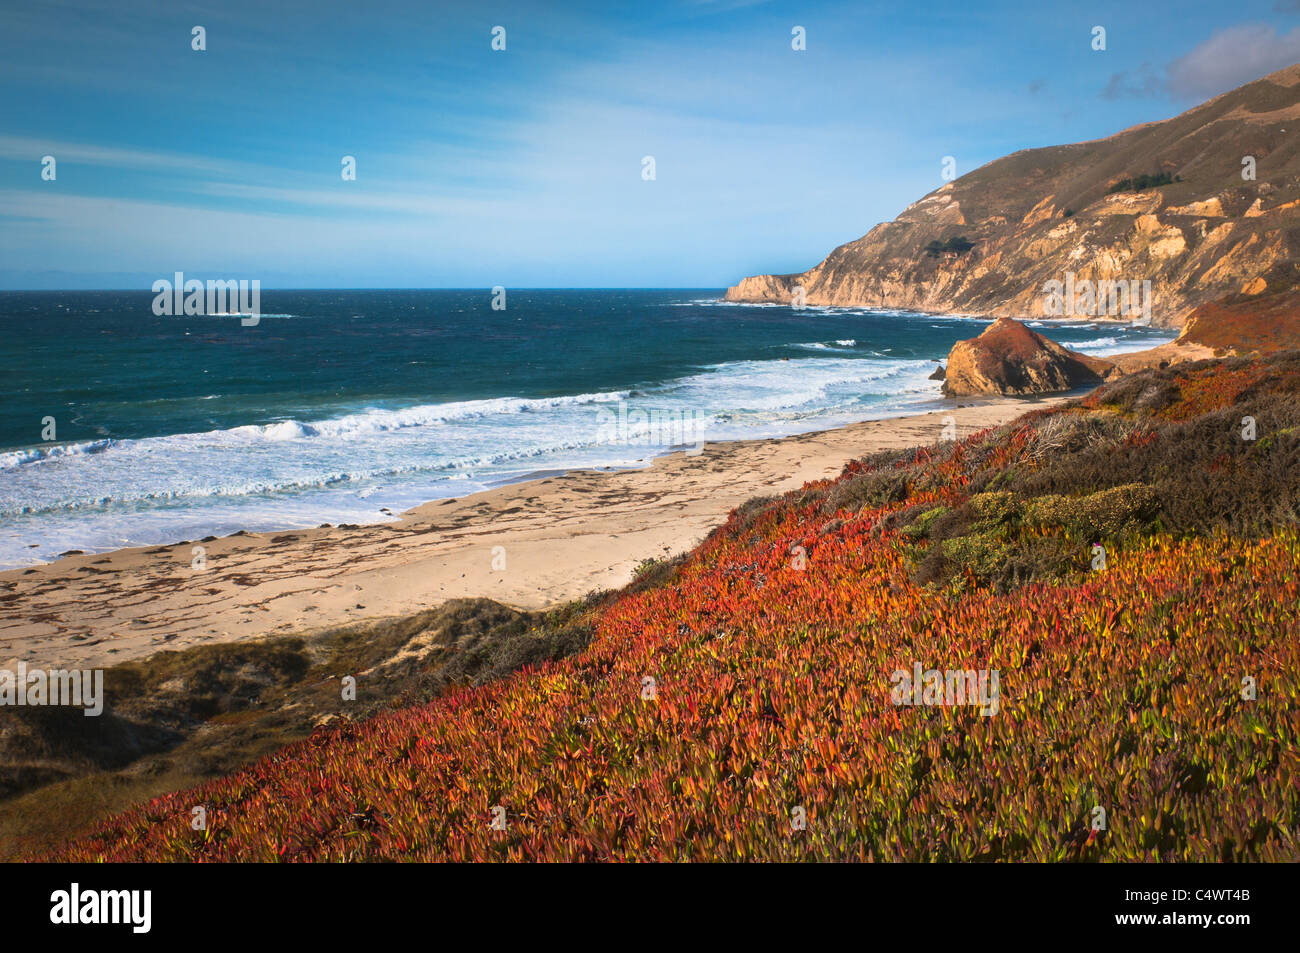 Estados Unidos,California,Big Sur,plantas rojas, por playa Imagen De Stock